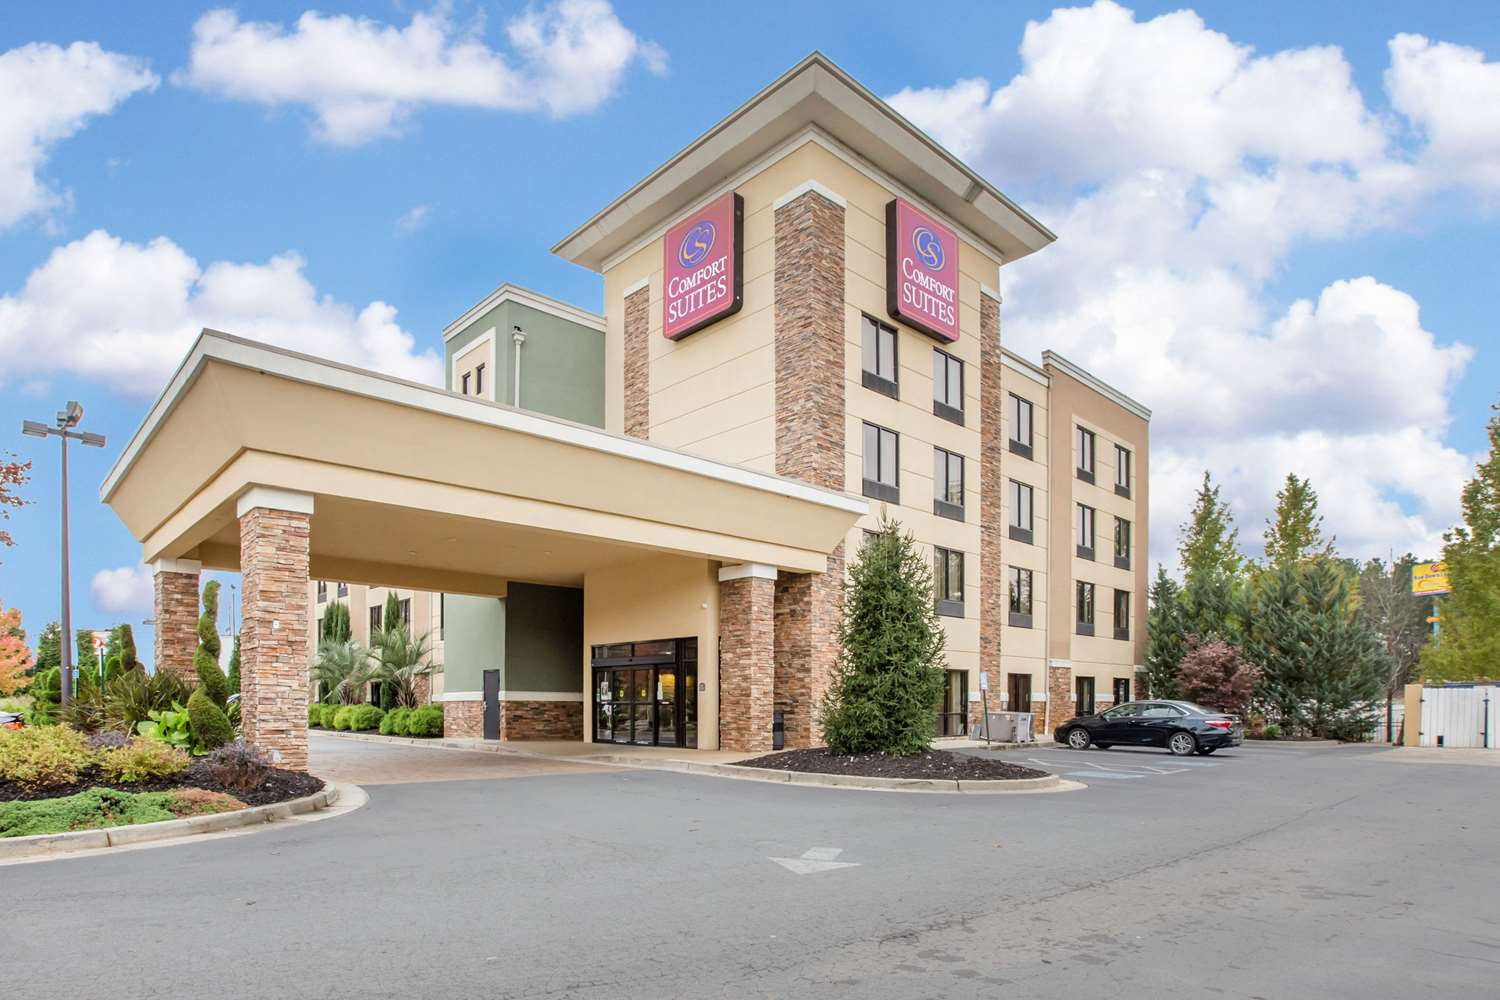 Hotels Near Tanger Outlet Locust Grove Ga